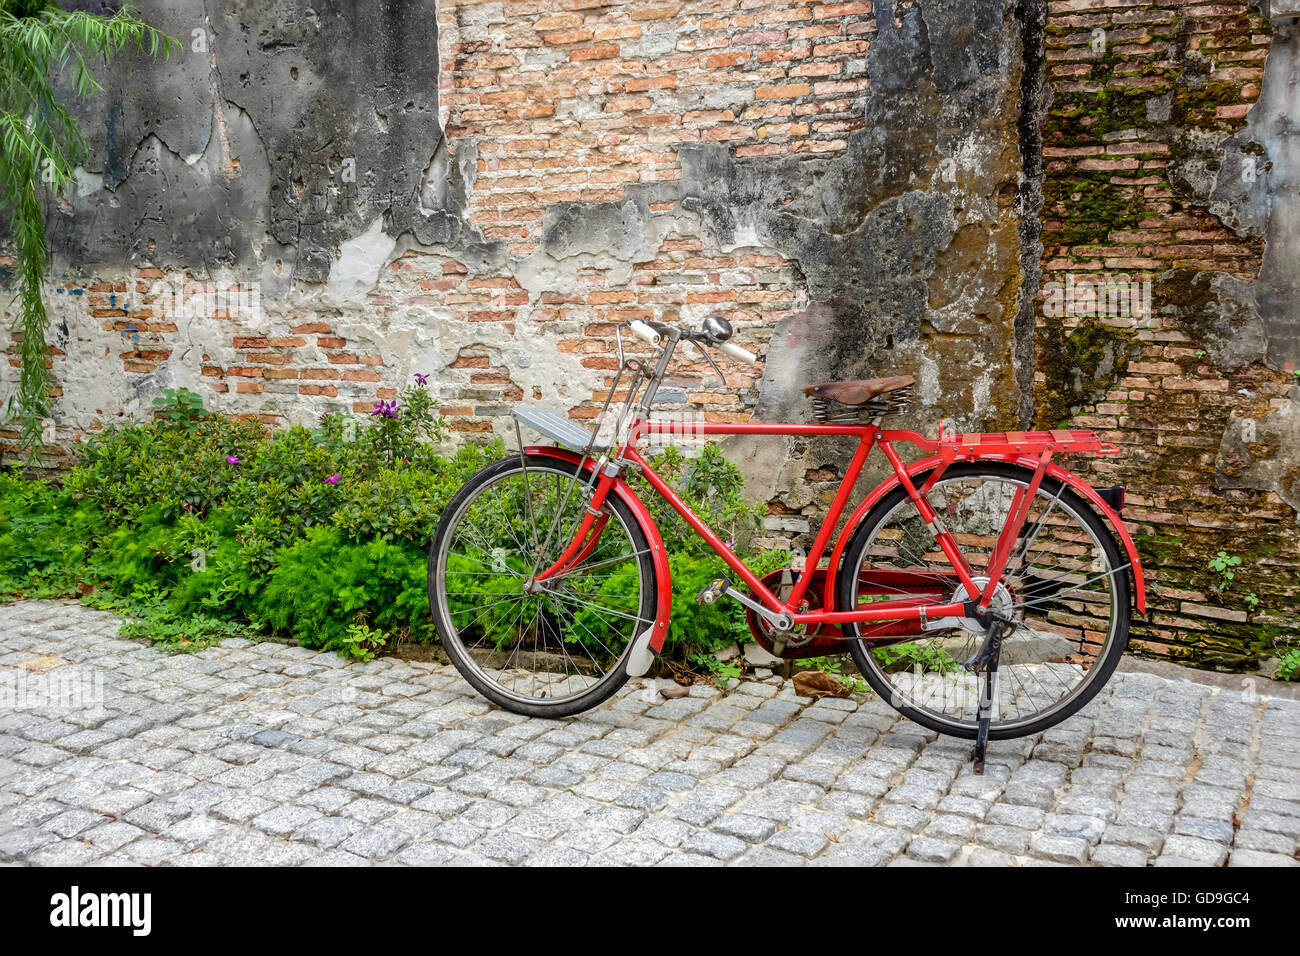 Retro styled image of a vintage red bicycle - Stock Image